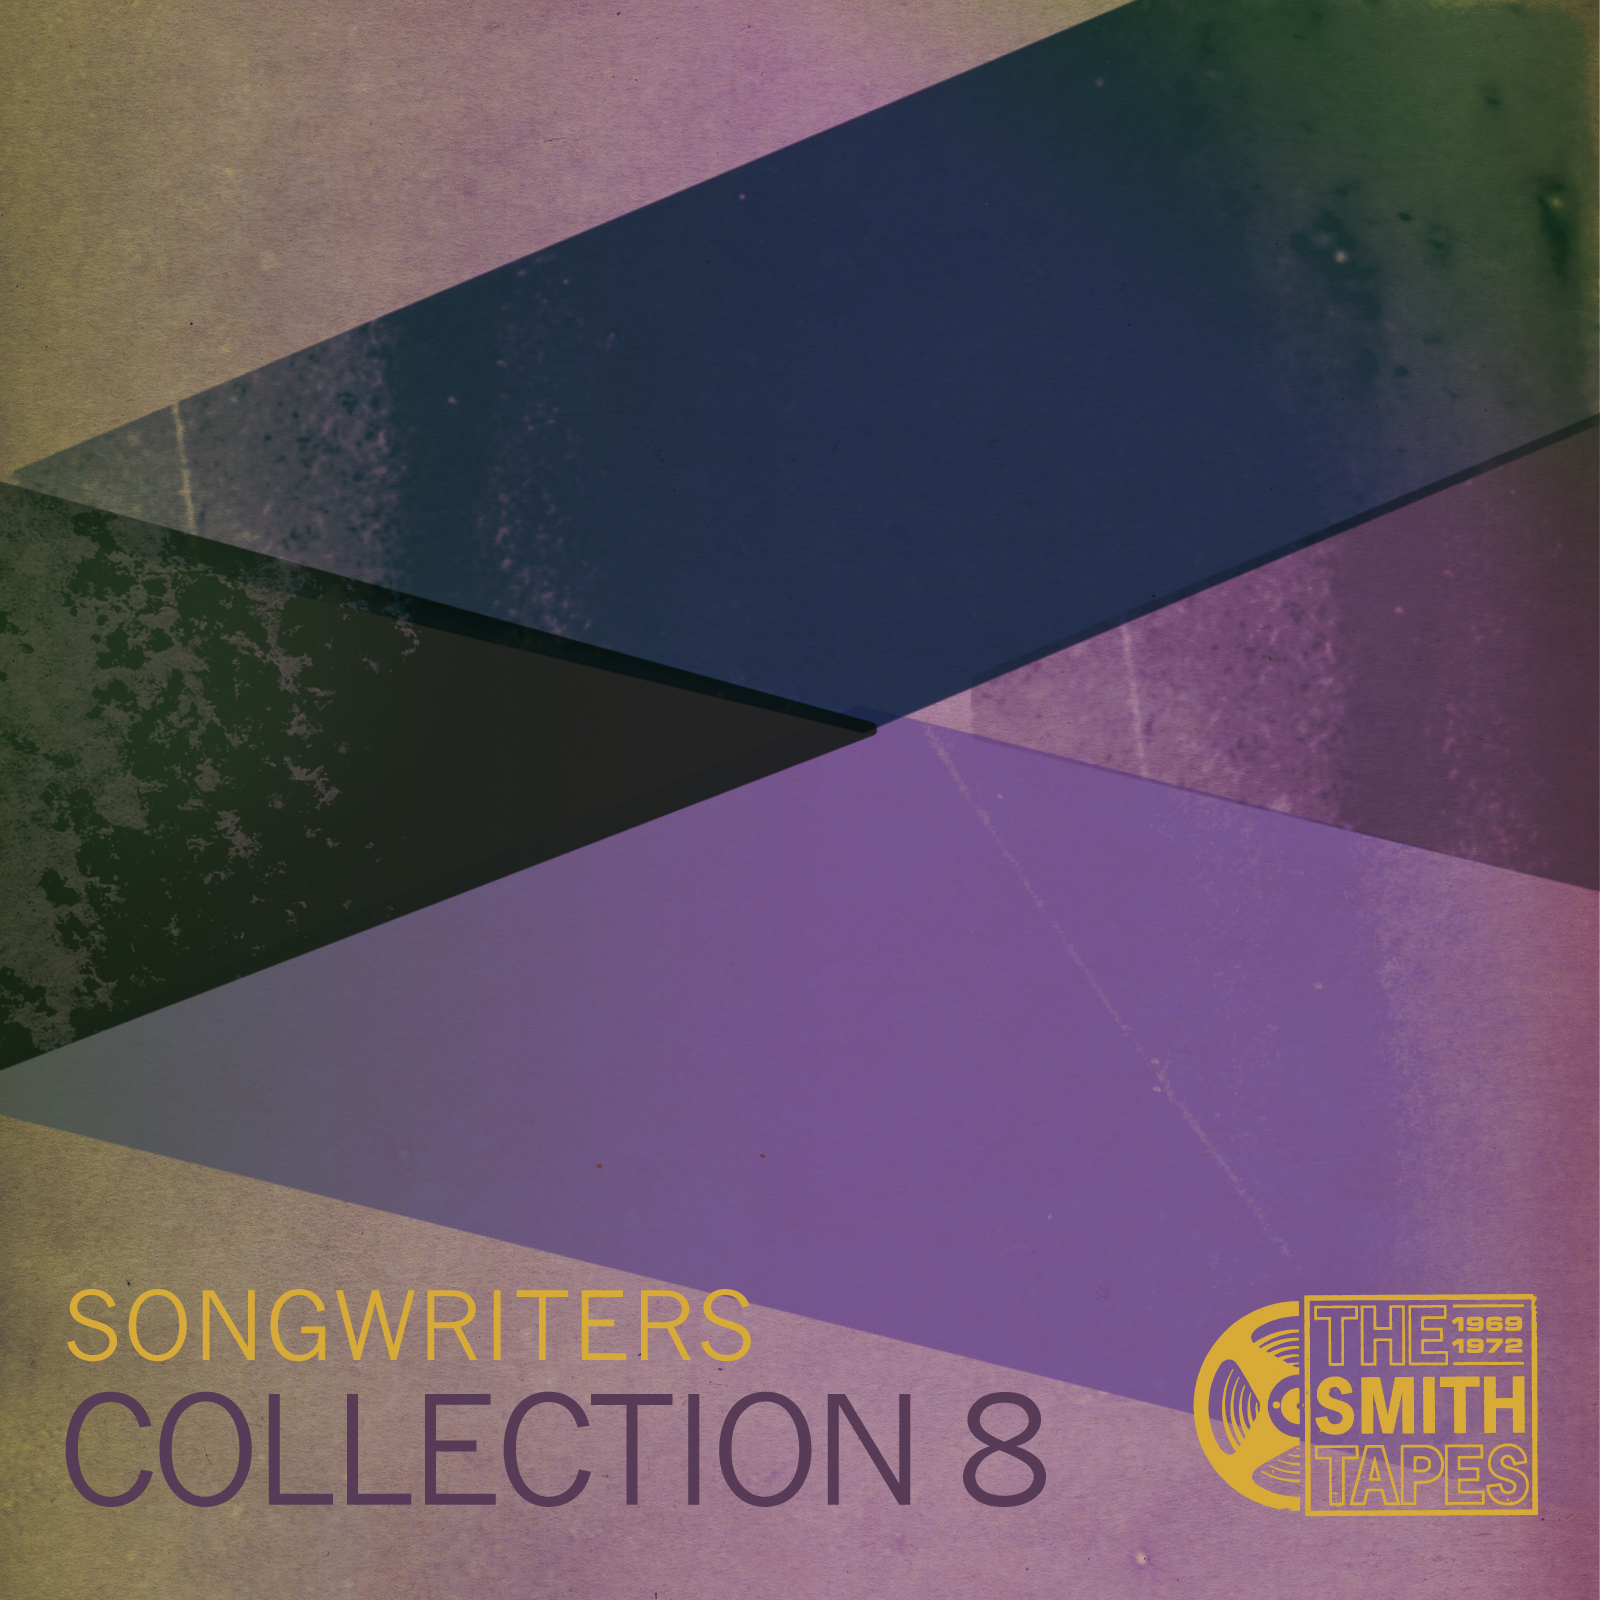 COLLECTION 8 ON iTUNES!